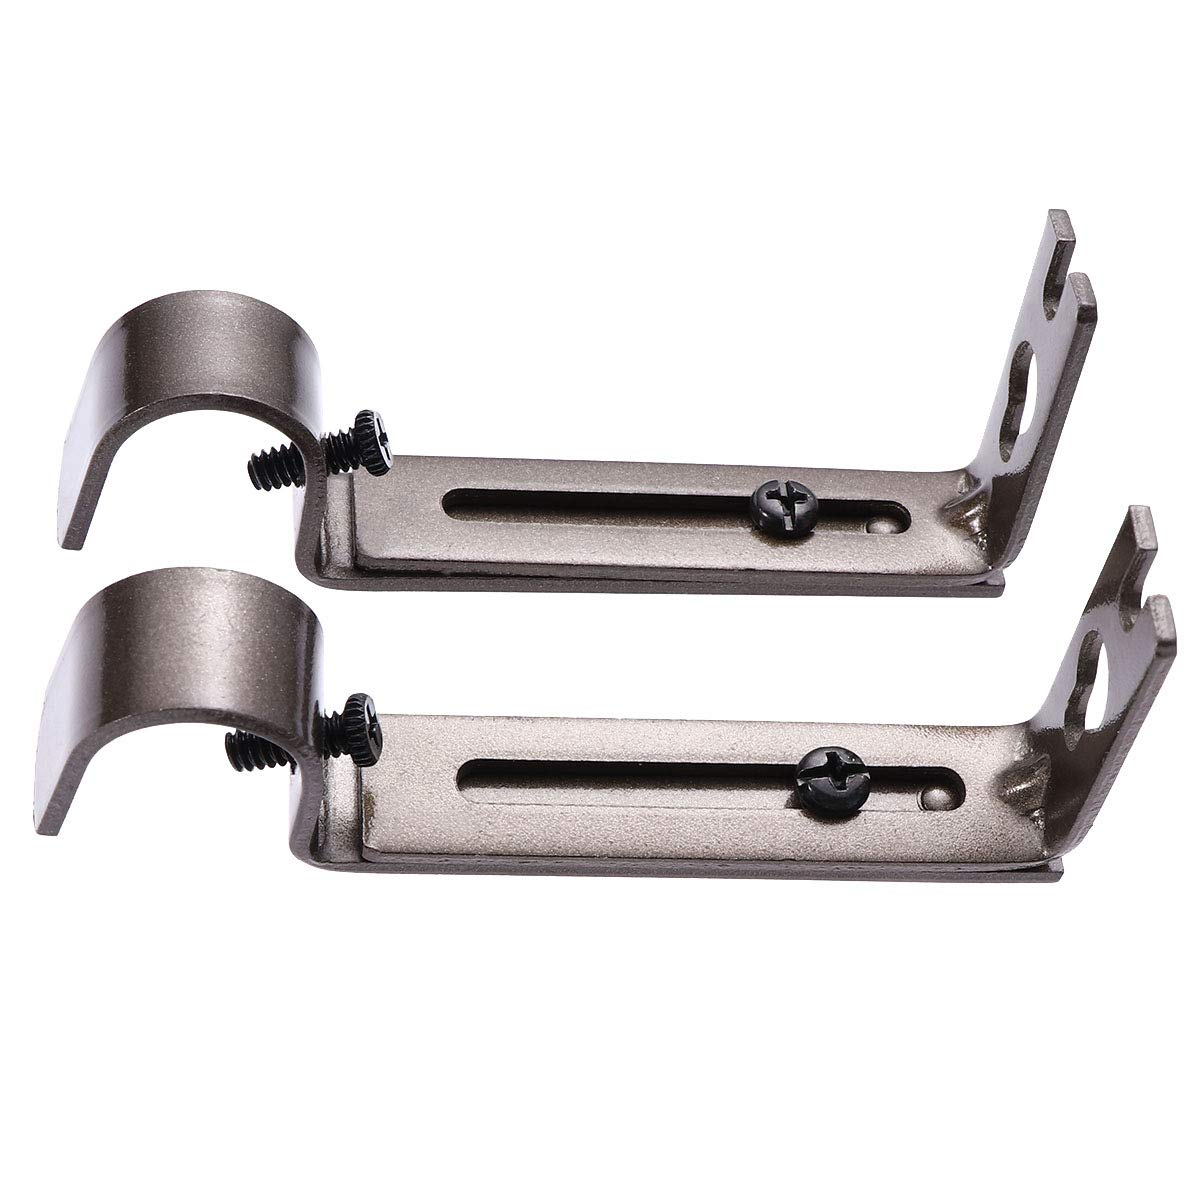 19.05mm Adjustable Curtain Rod Curtain Pole Holder Curtain Drapery Rod Brackets (Coffee) Pack of 2 VORCOOL